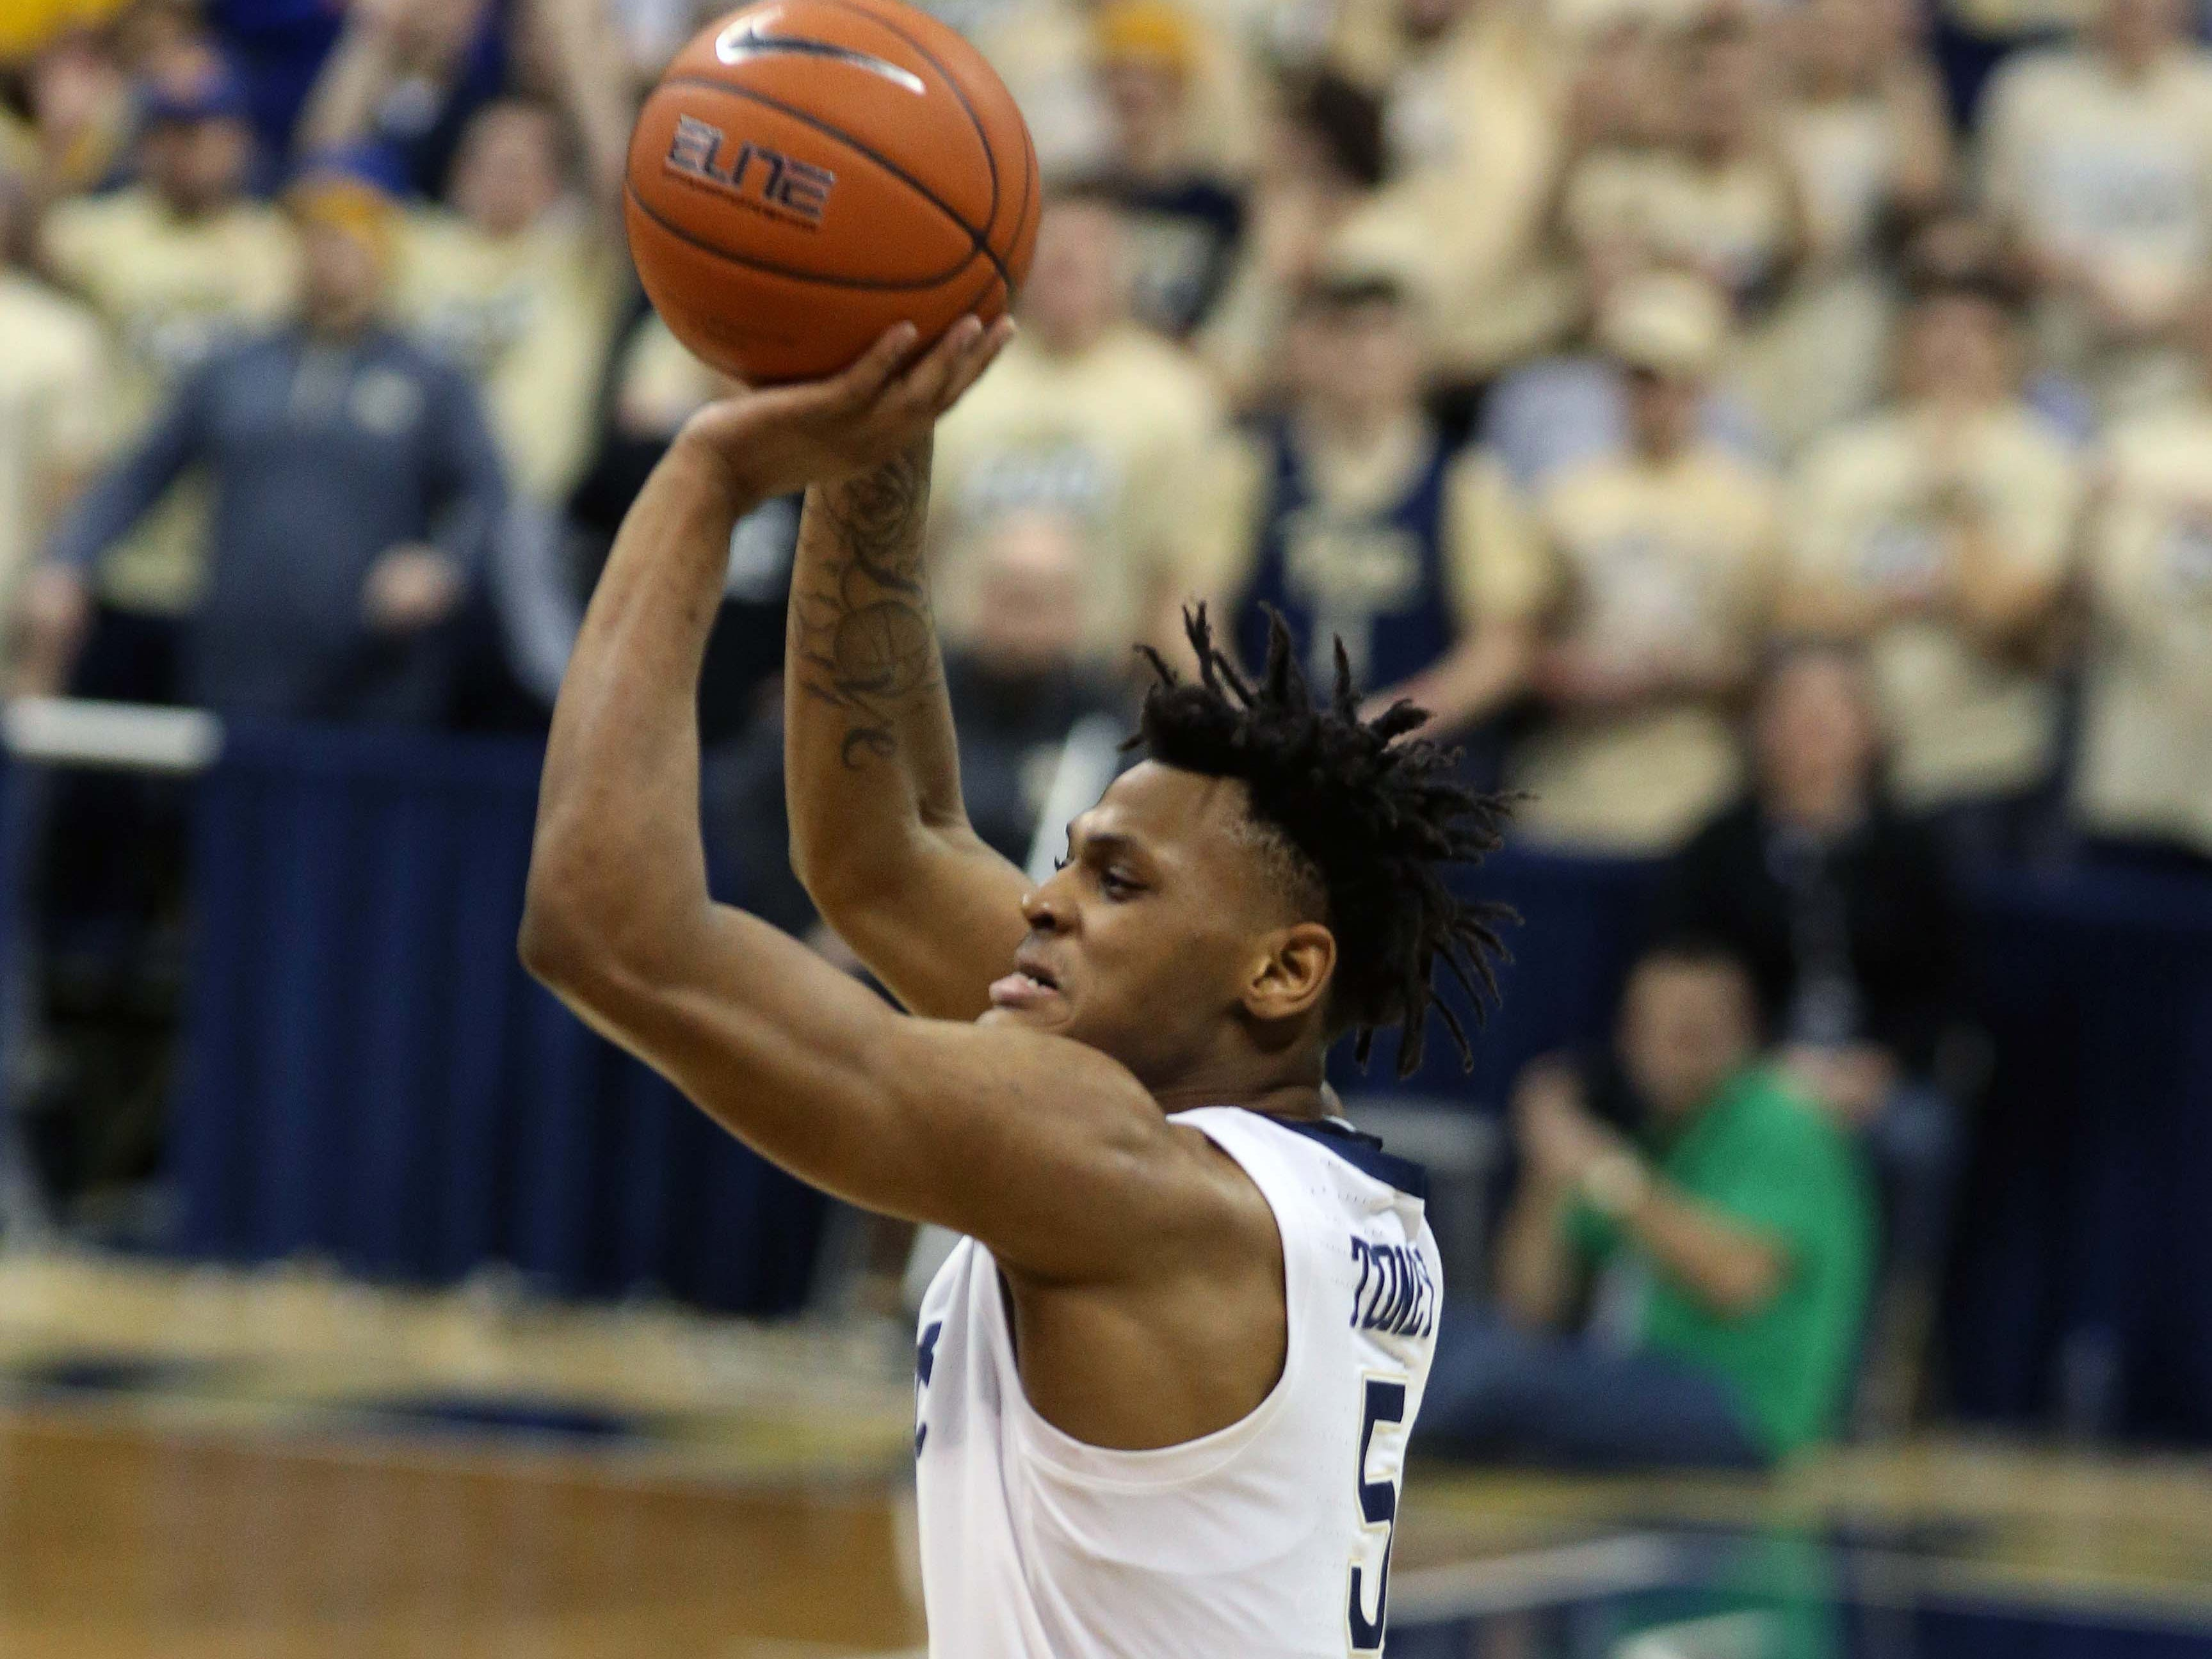 Jan 14, 2019; Pittsburgh, PA, USA; Pittsburgh Panthers guard Au'Diese Toney (5) shoots a three point basket against the Florida State Seminoles during the first half at the Petersen Events Center. Mandatory Credit: Charles LeClaire-USA TODAY Sports